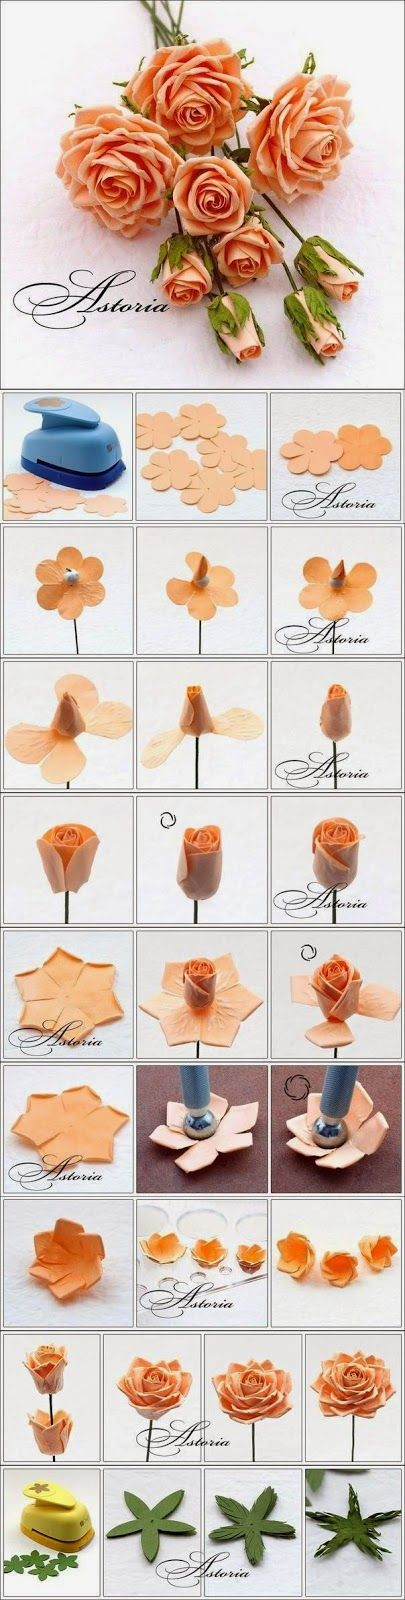 Easy Craft Idea : BOUQUET OF DELICATE FLOWERS. - FLOWERS FROM PAPER